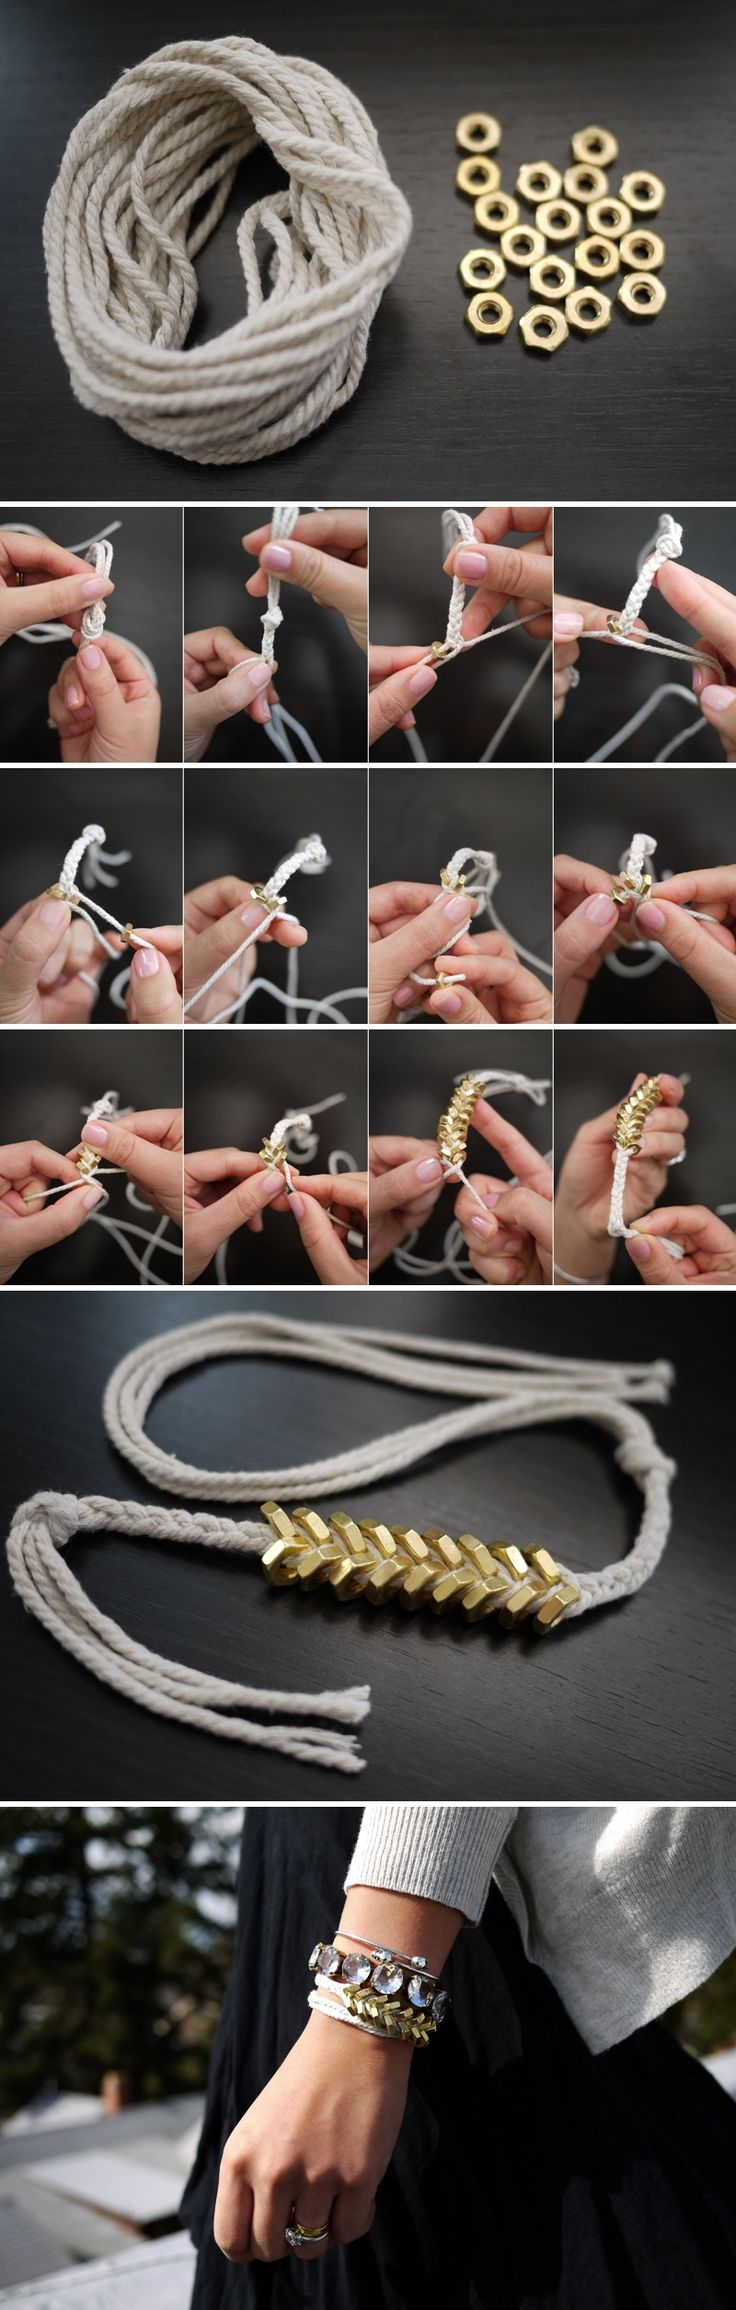 I have to try this, what a great idea for nuts and bolts! #friendship #bracelet #bolt #nut  http://honestlywtf.com/diy/diy-braided-hex-nut-bracelet/